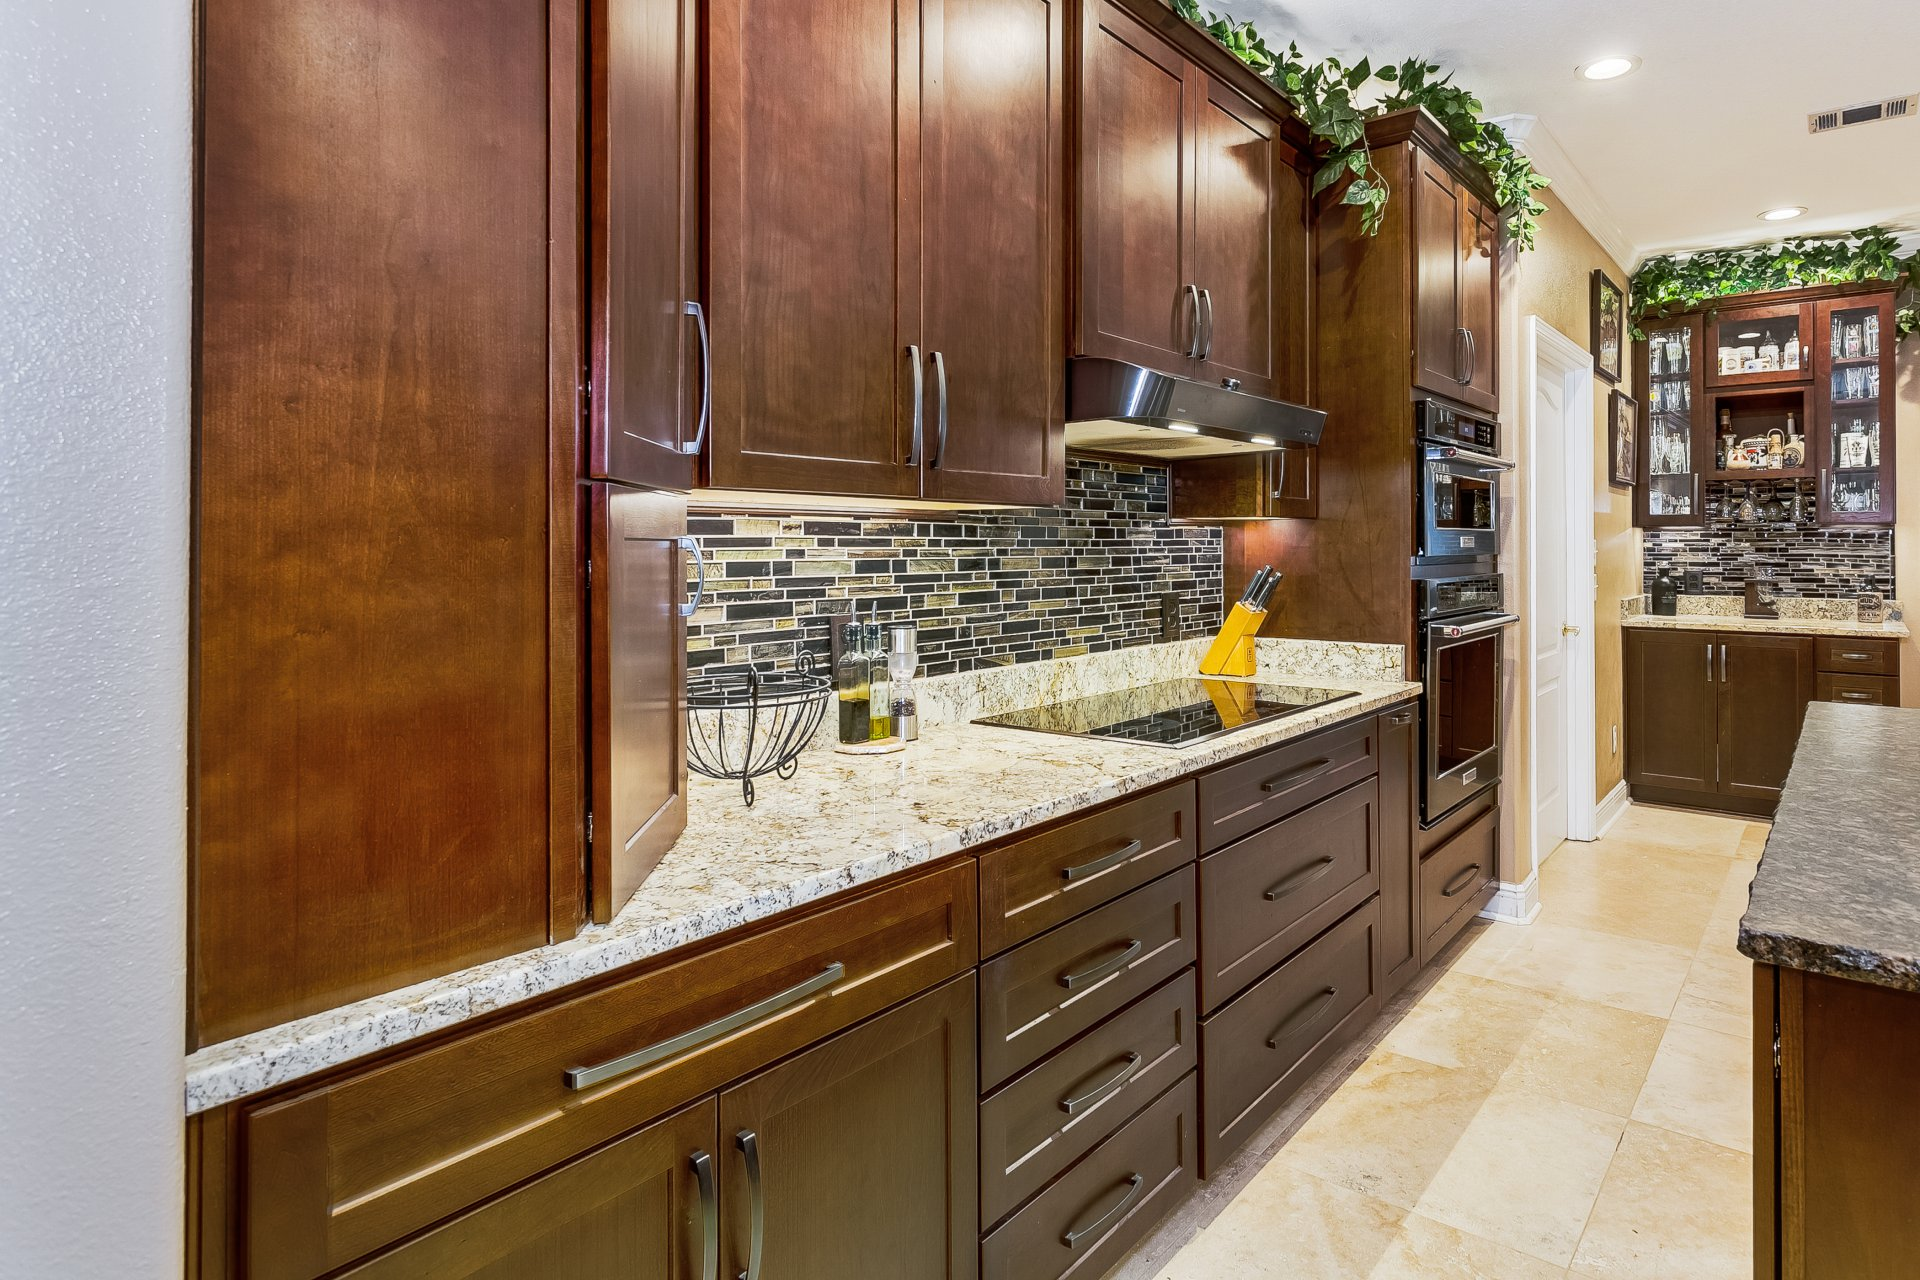 Ely and Allen - New kitchen cabinets